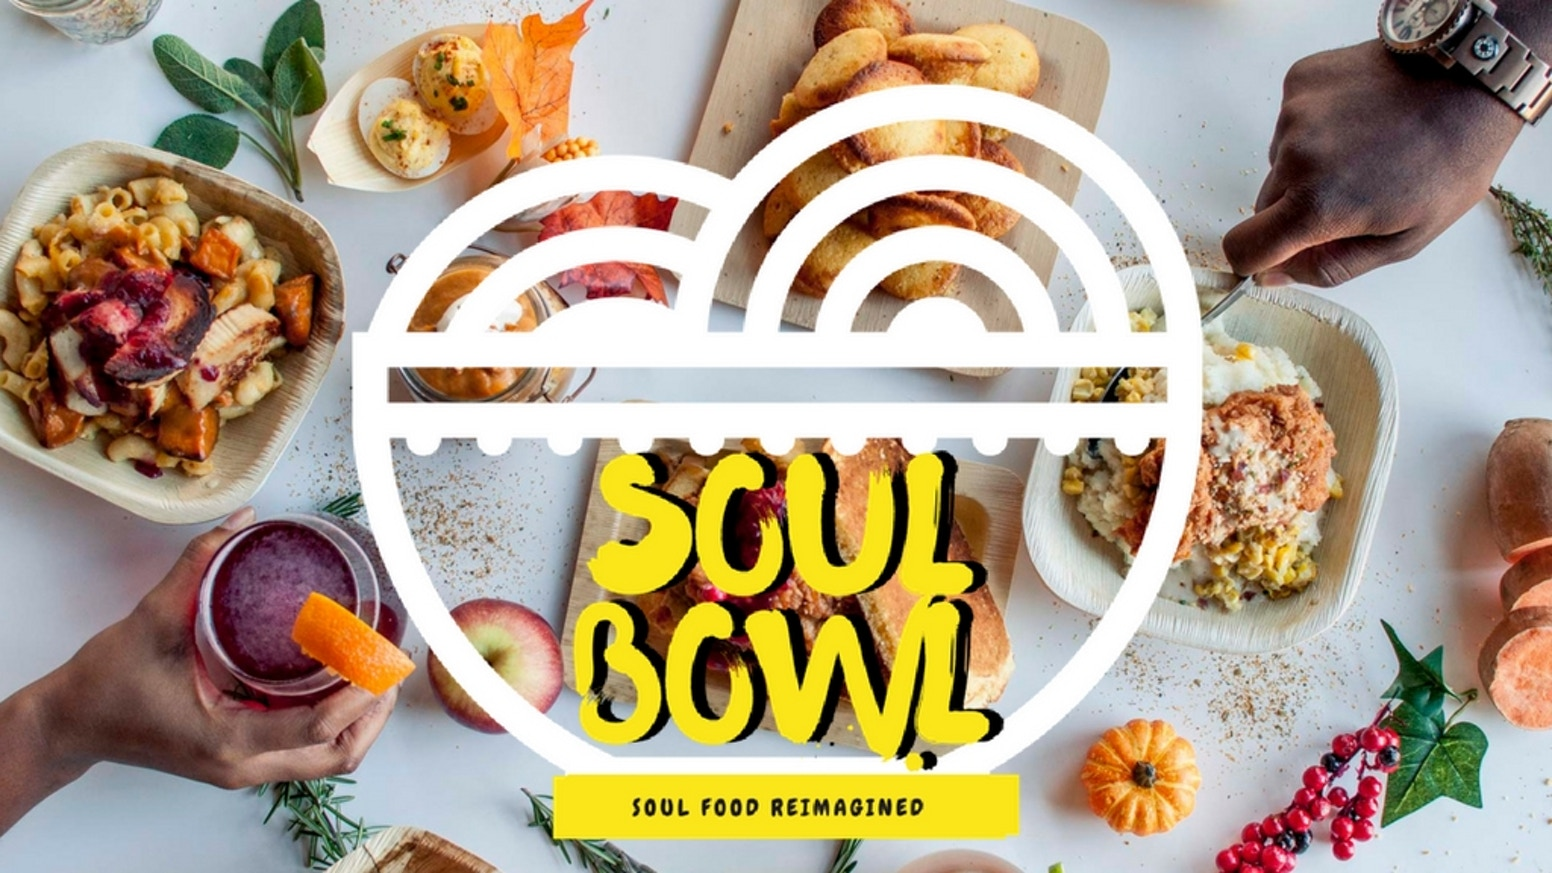 Soul bowl soul food reimagined neosoulfood by gerard for Food s bar unloc